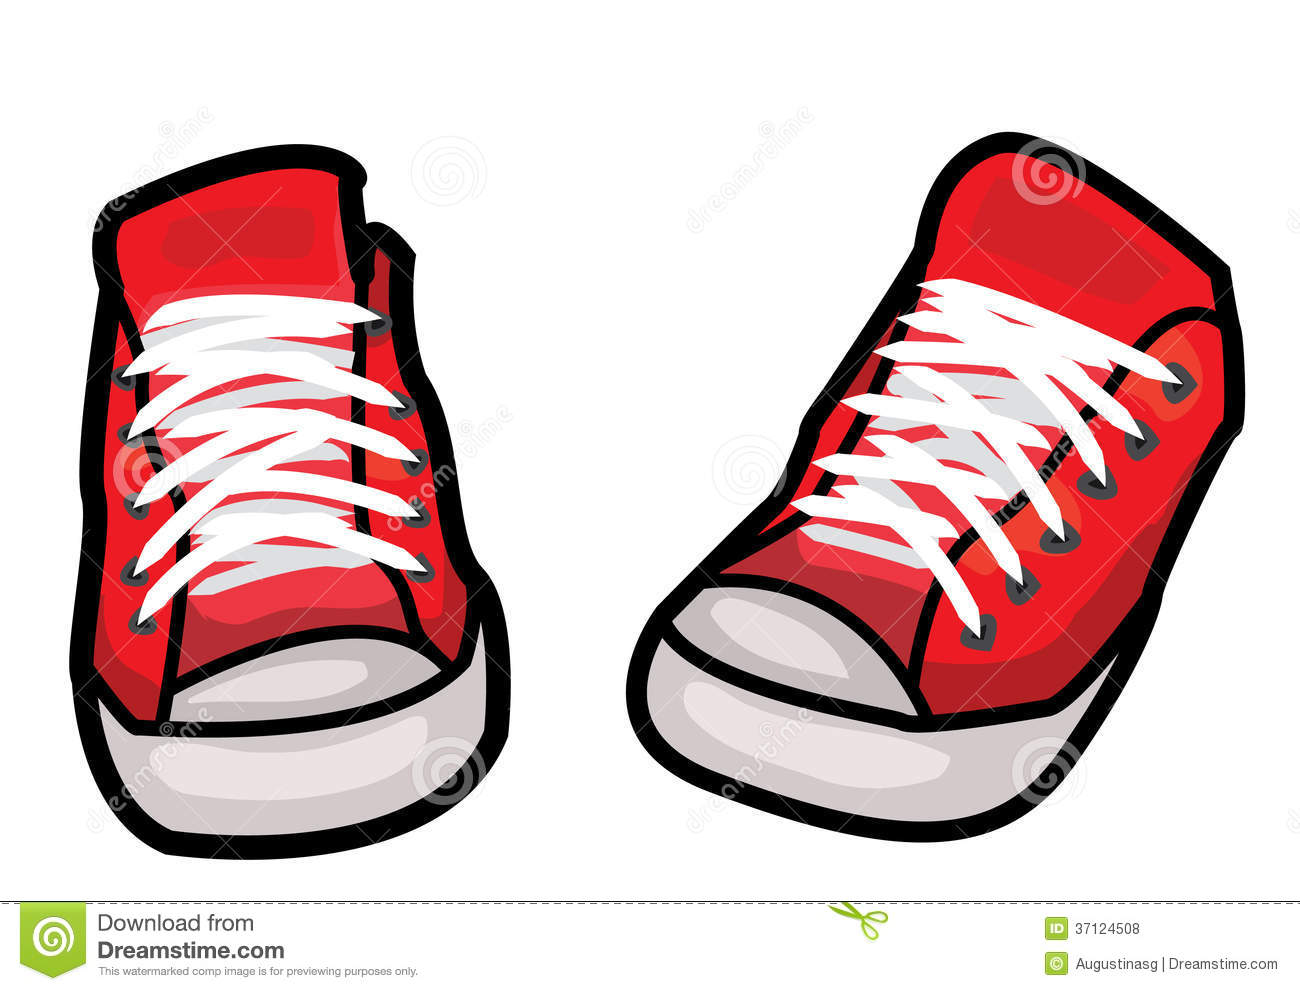 Shoes Illustration Royalty Free Stock Photos   Image  37124508